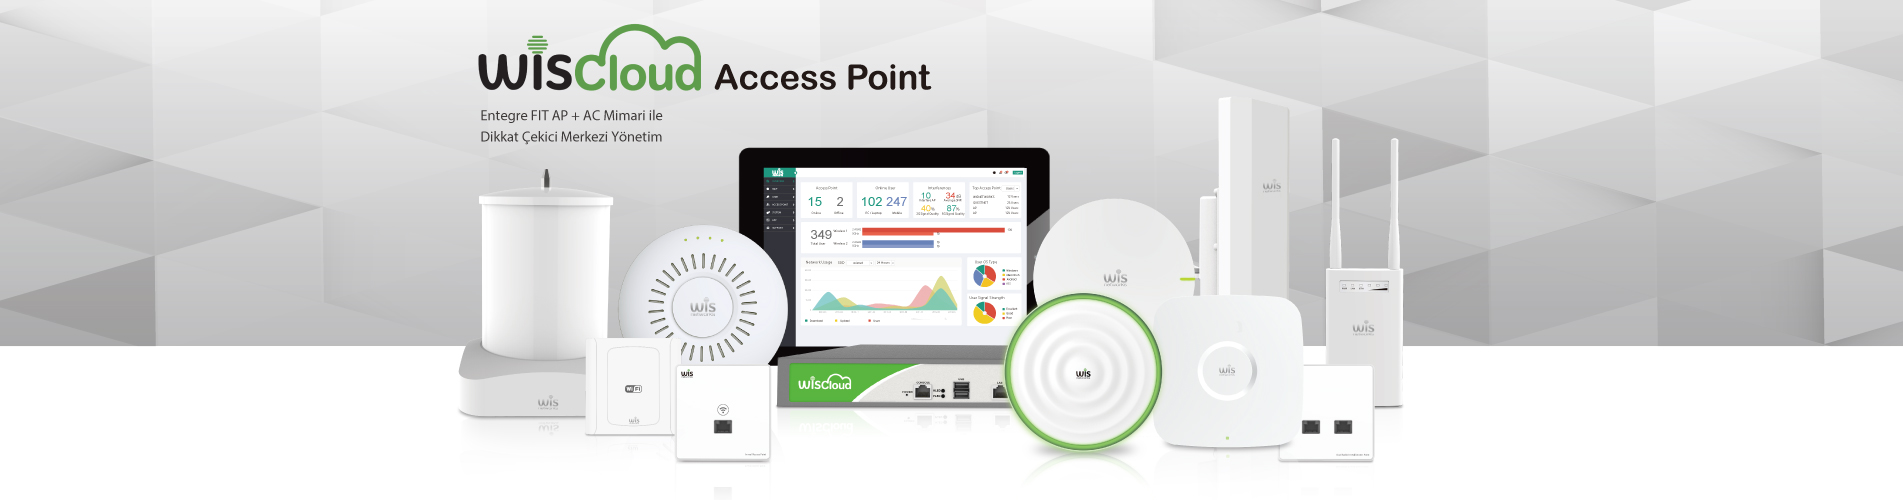 2019 Wis Cloud Access Point